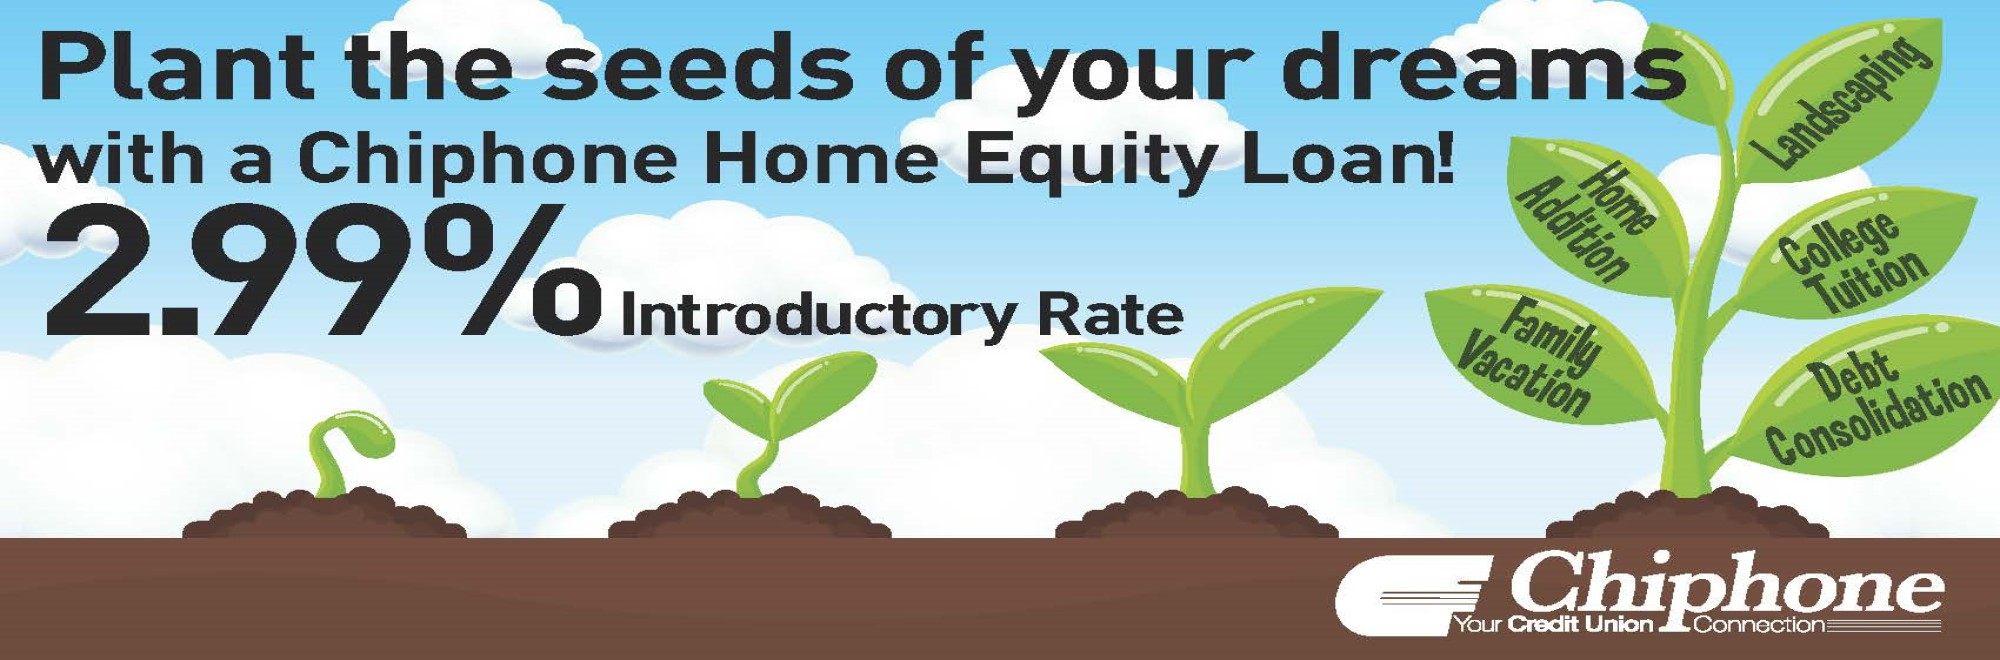 Home Equity Line of Credit Special!